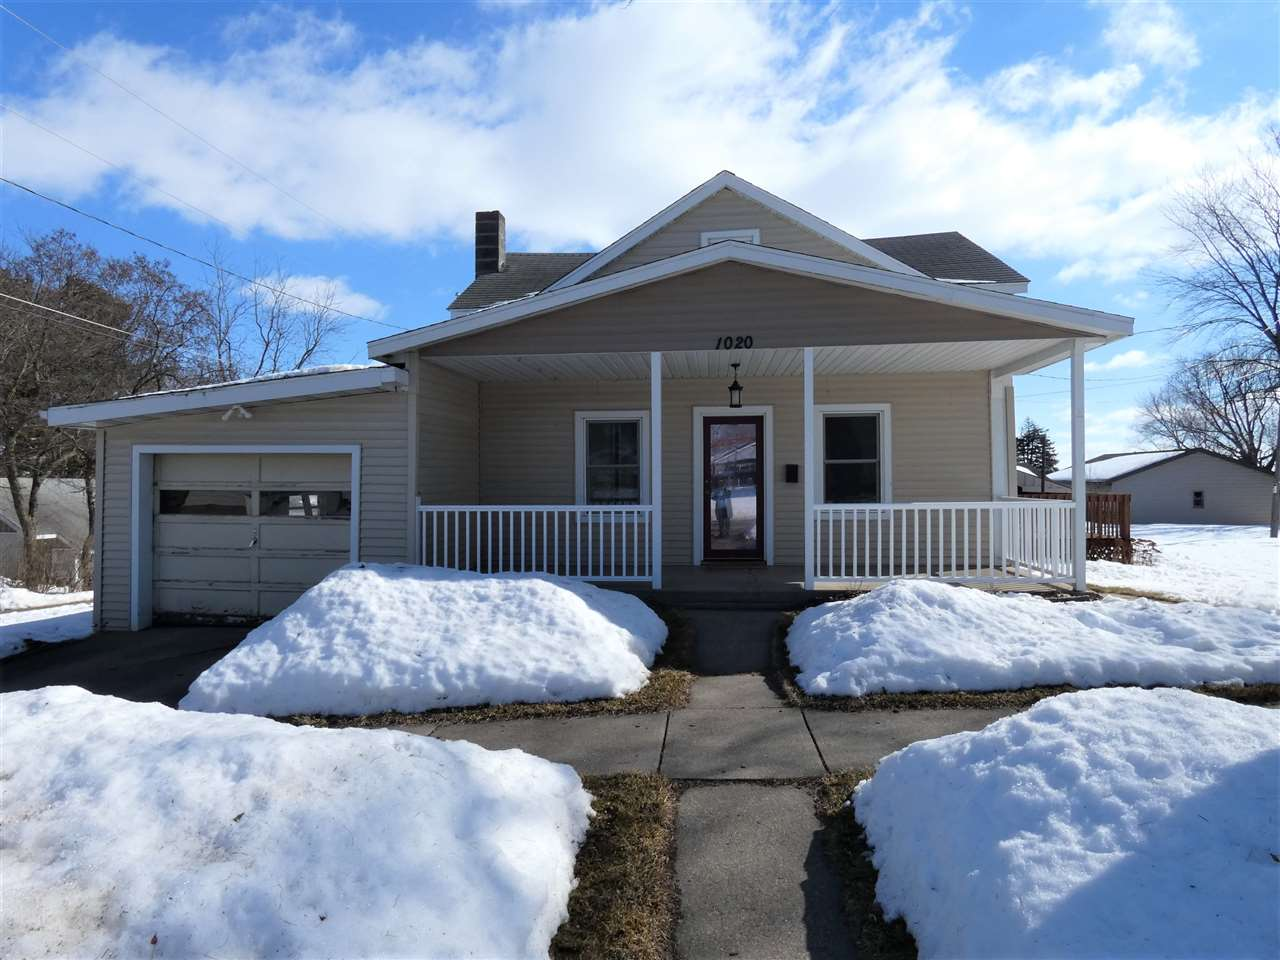 1020 Center St, Mineral Point, WI